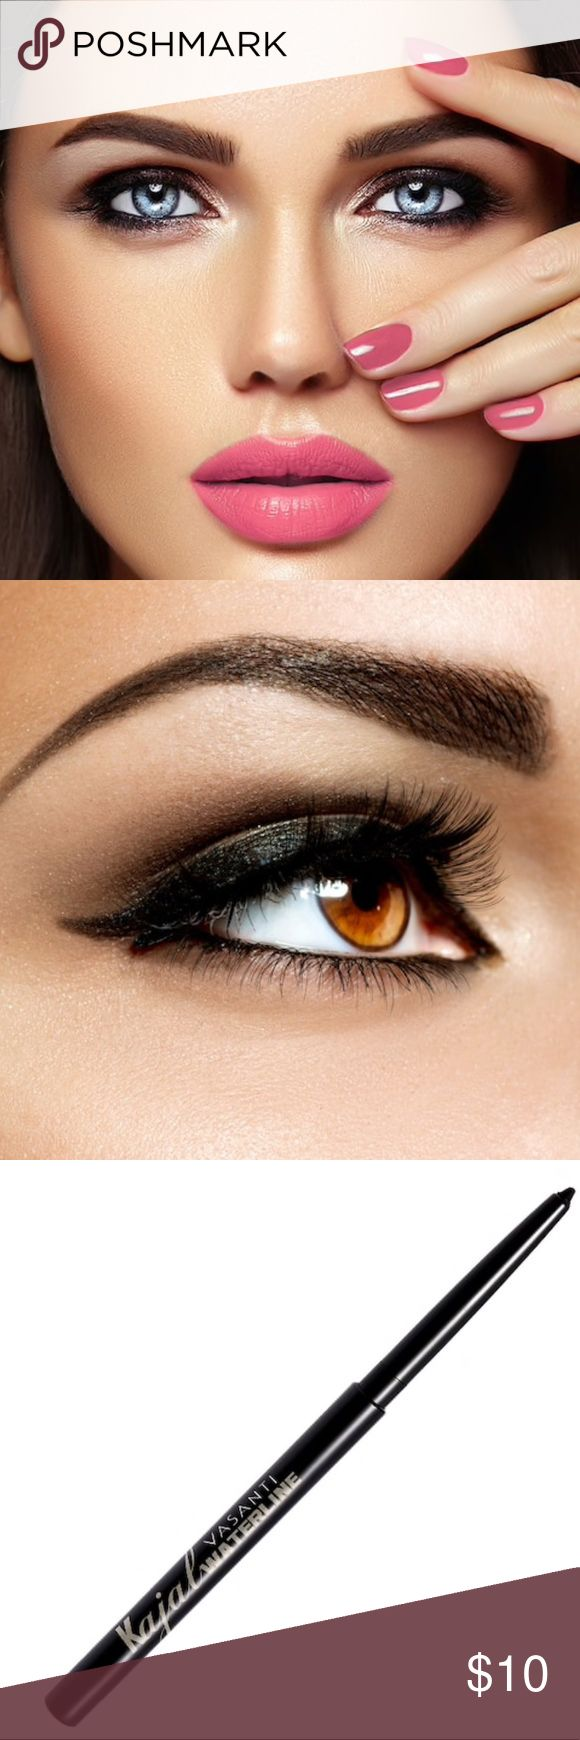 Kajal Waterline Eyeliner Pencil Gives you a defined, natural look that makes lashes appear fuller and longer while brightening your eyes for a youthful but polished gaze. Uses a creamy, easy glide formula that offers one-stroke colour and a velvety matte finish that lasts all day even on the wet rims of your eyes. Safe to use on delicate eye areas. Cruelty-free. Vegan-friendly. Gluten-free. Paraben free. Dermatologist and Ophthalmologist tested and approved. Made in Canada. NWOT. Color…